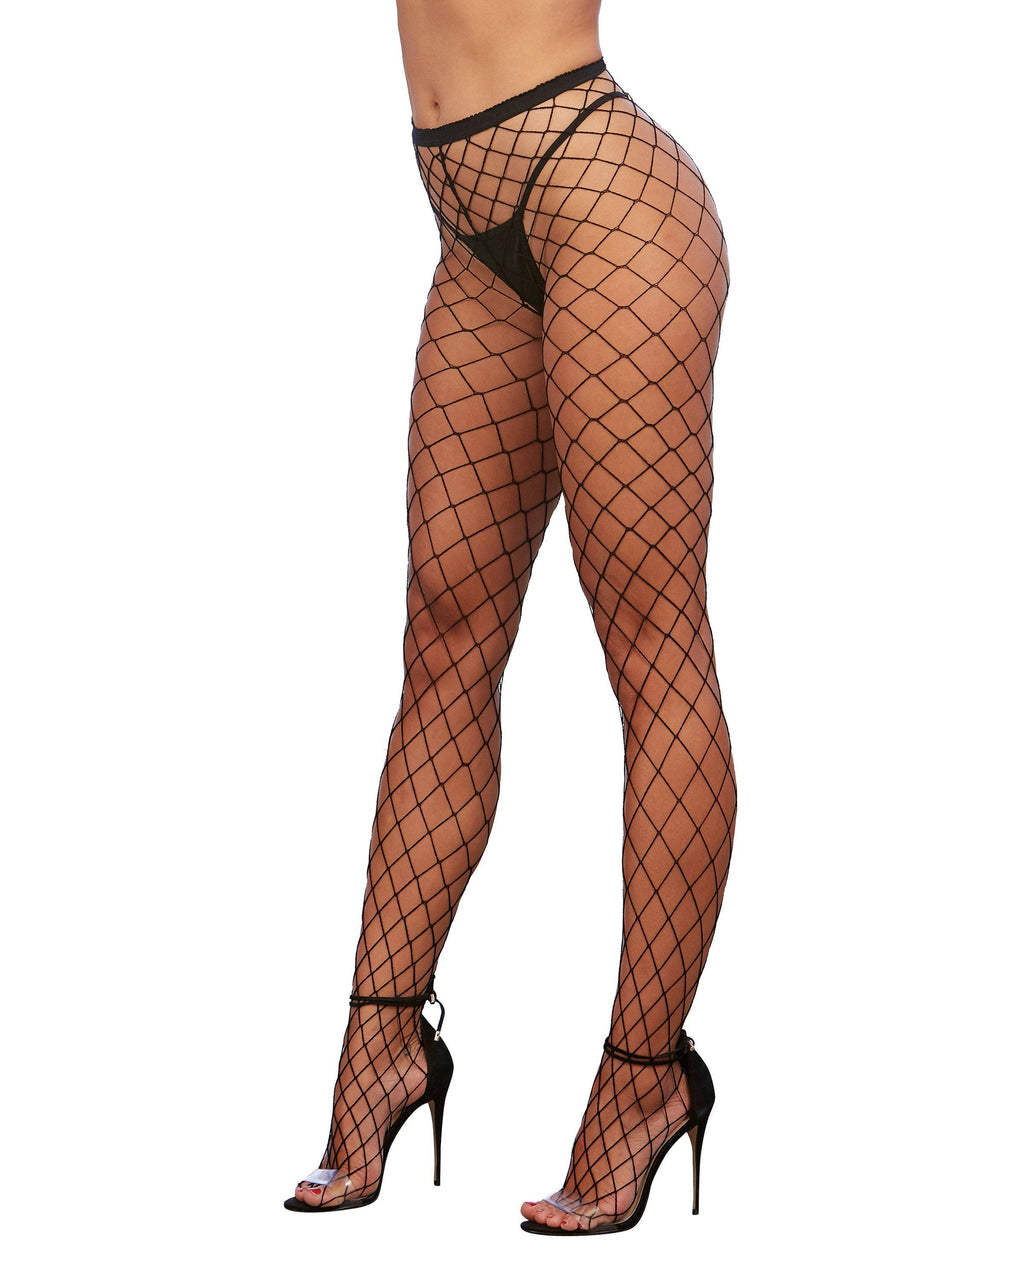 Fence Net Pantyhose Pantyhose Dreamgirl International